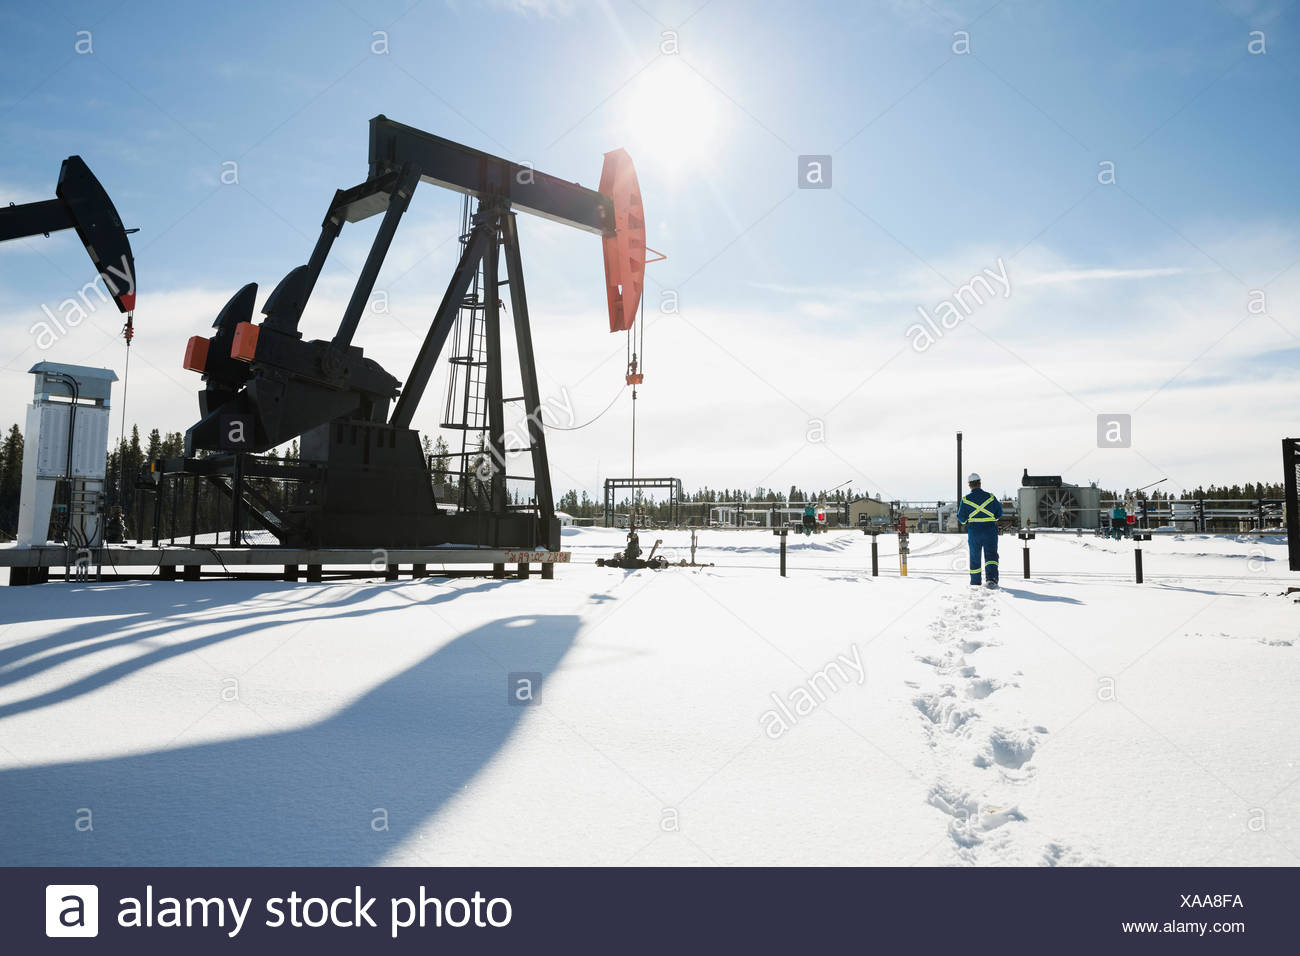 Worker walking toward drilling rigs in snow - Stock Image